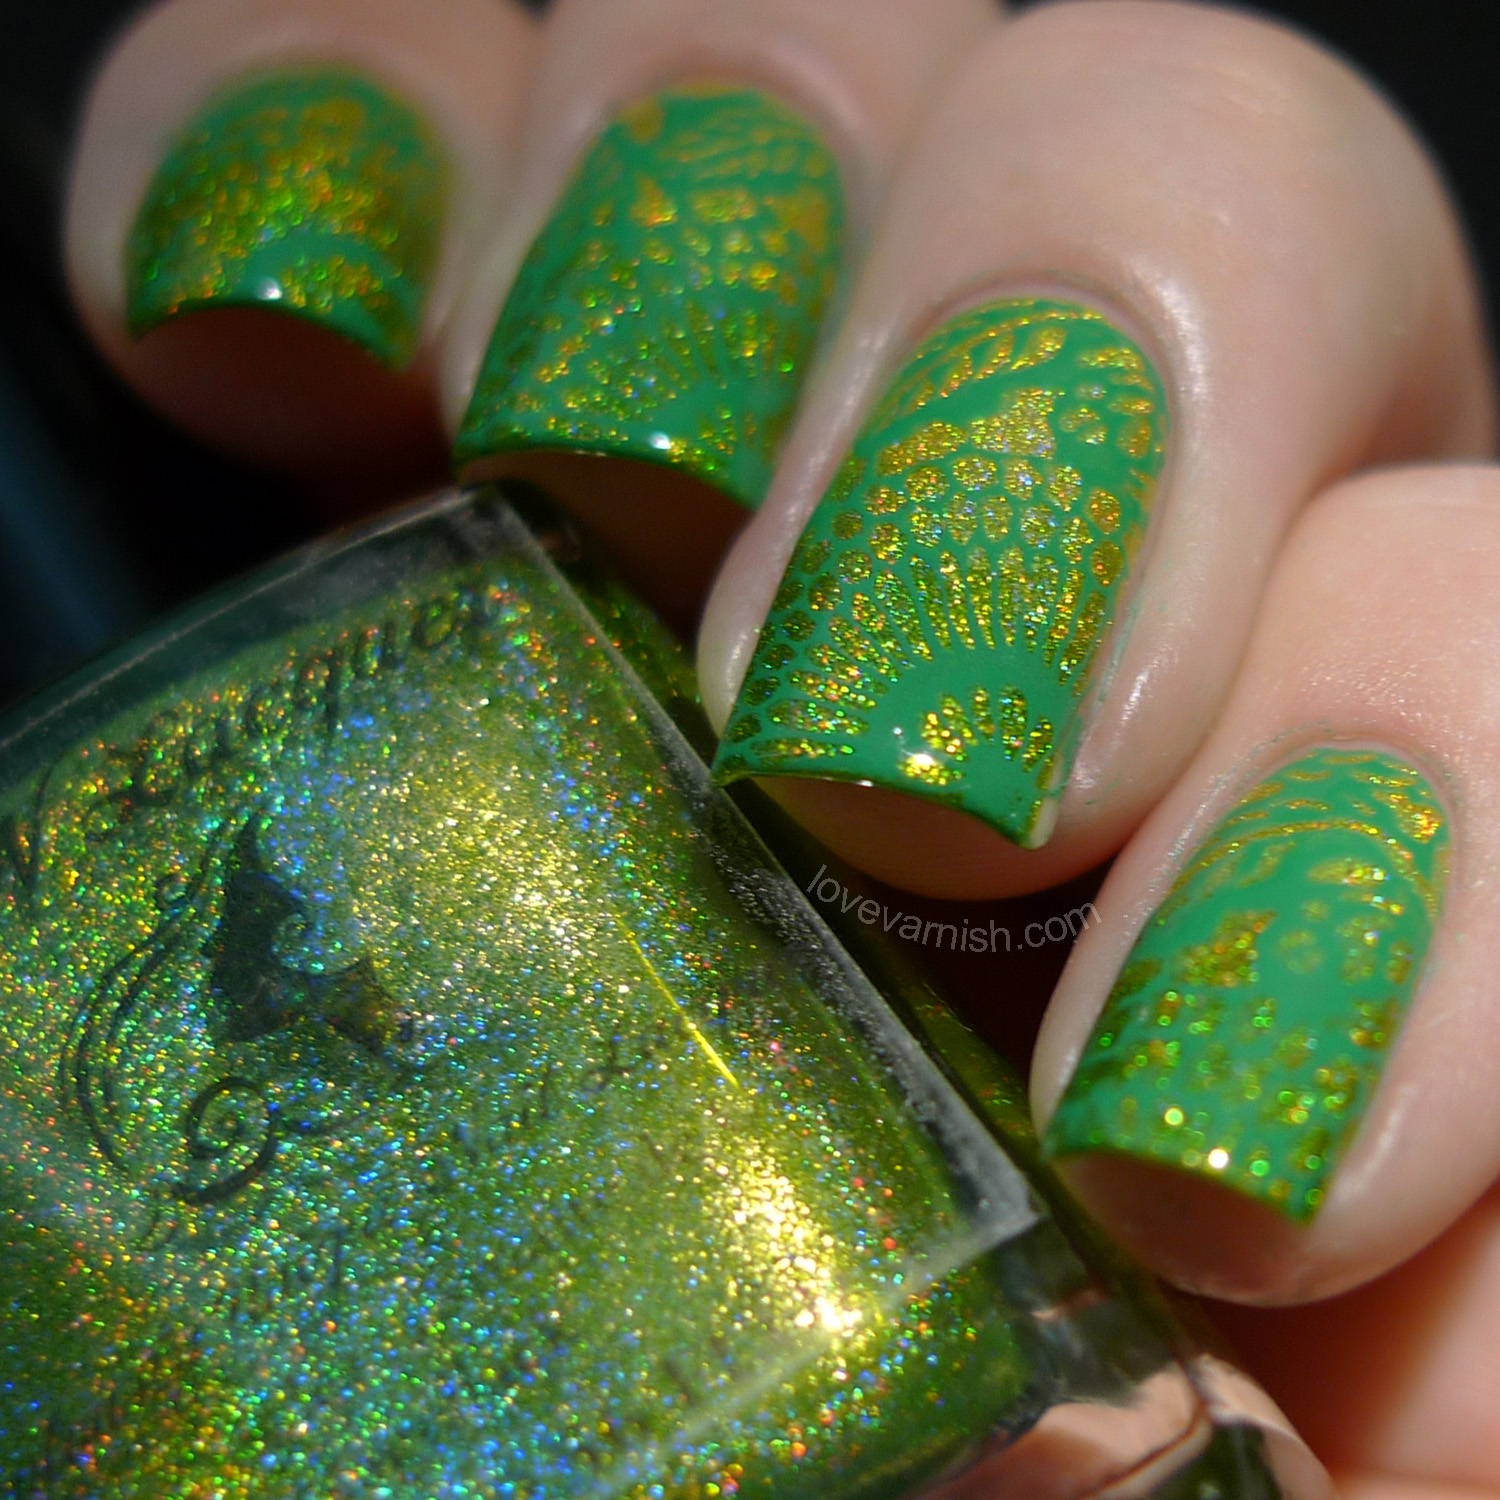 F.U.N Lacquer Margarita Cocktail and Mowed Meadow nail art stamping